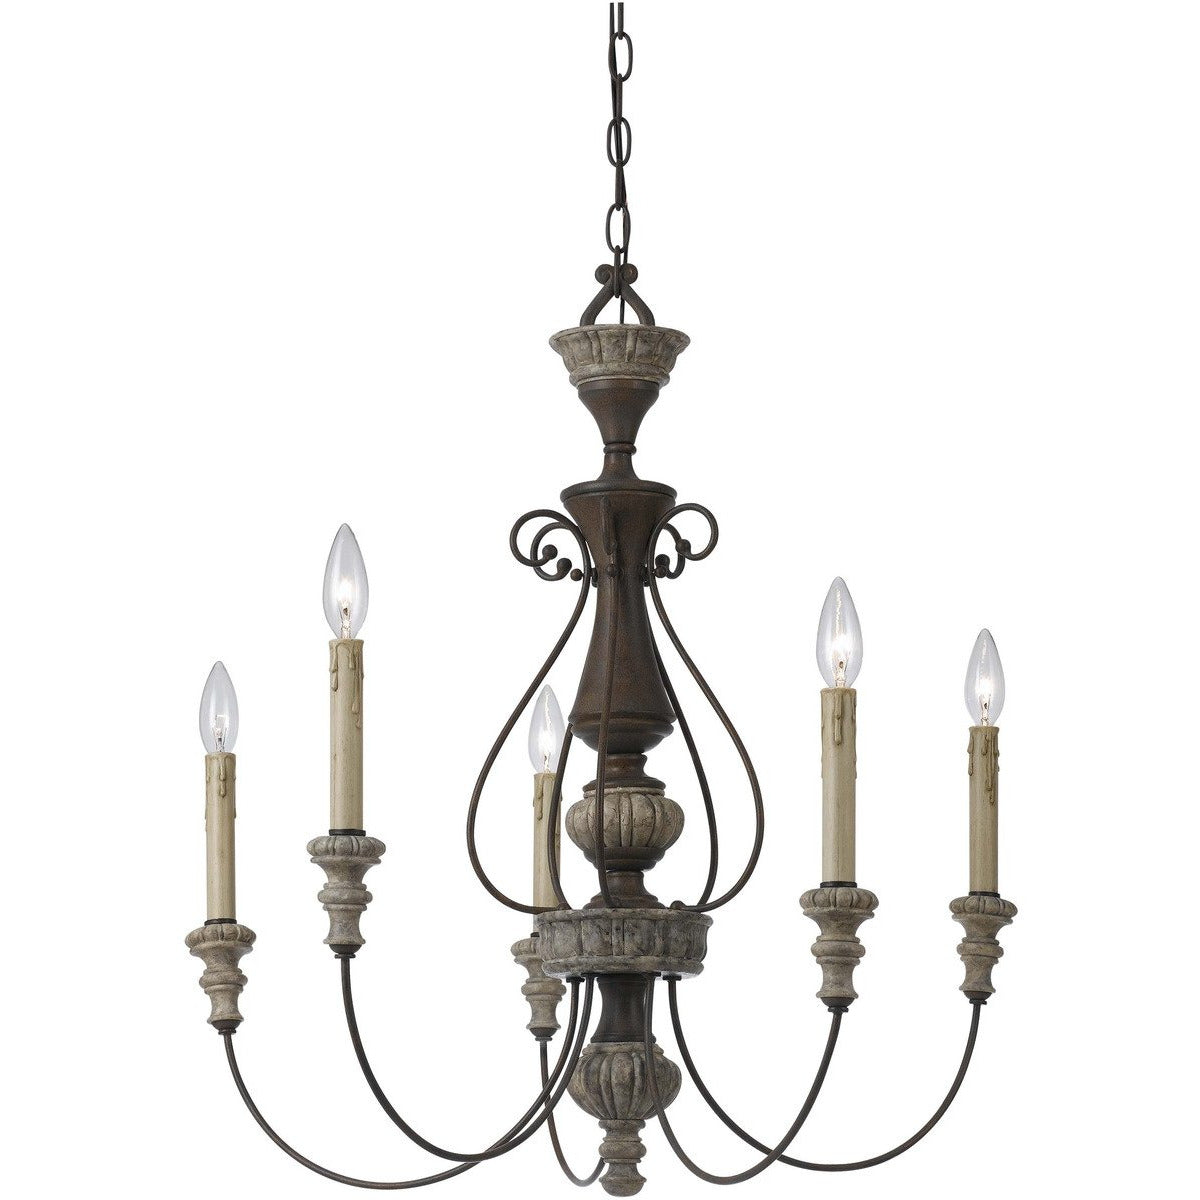 Chandeliers & Pendants - 5 Light Metal Candle Chandelier With Scrolled Details, Gray And Brown